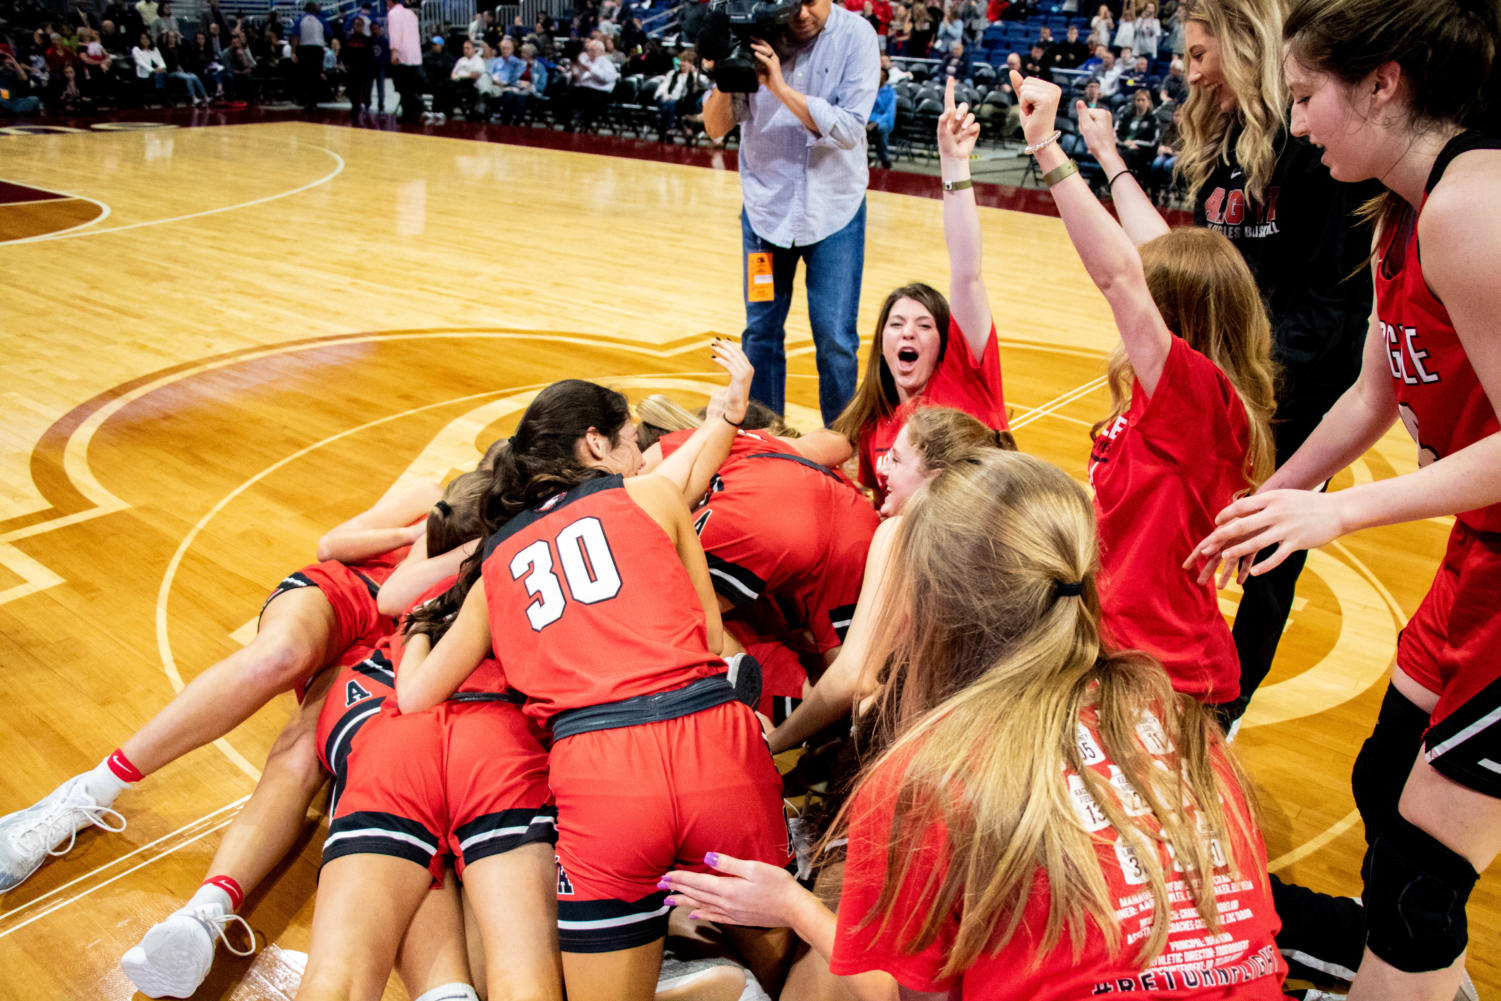 The Lady Eagles dogpile in center-court after they win the UIL Conference 4A State Championship game against Hardin-Jefferson at the Alamodome on March 3, 2019. (Campbell Wilmot/ The Talon News).